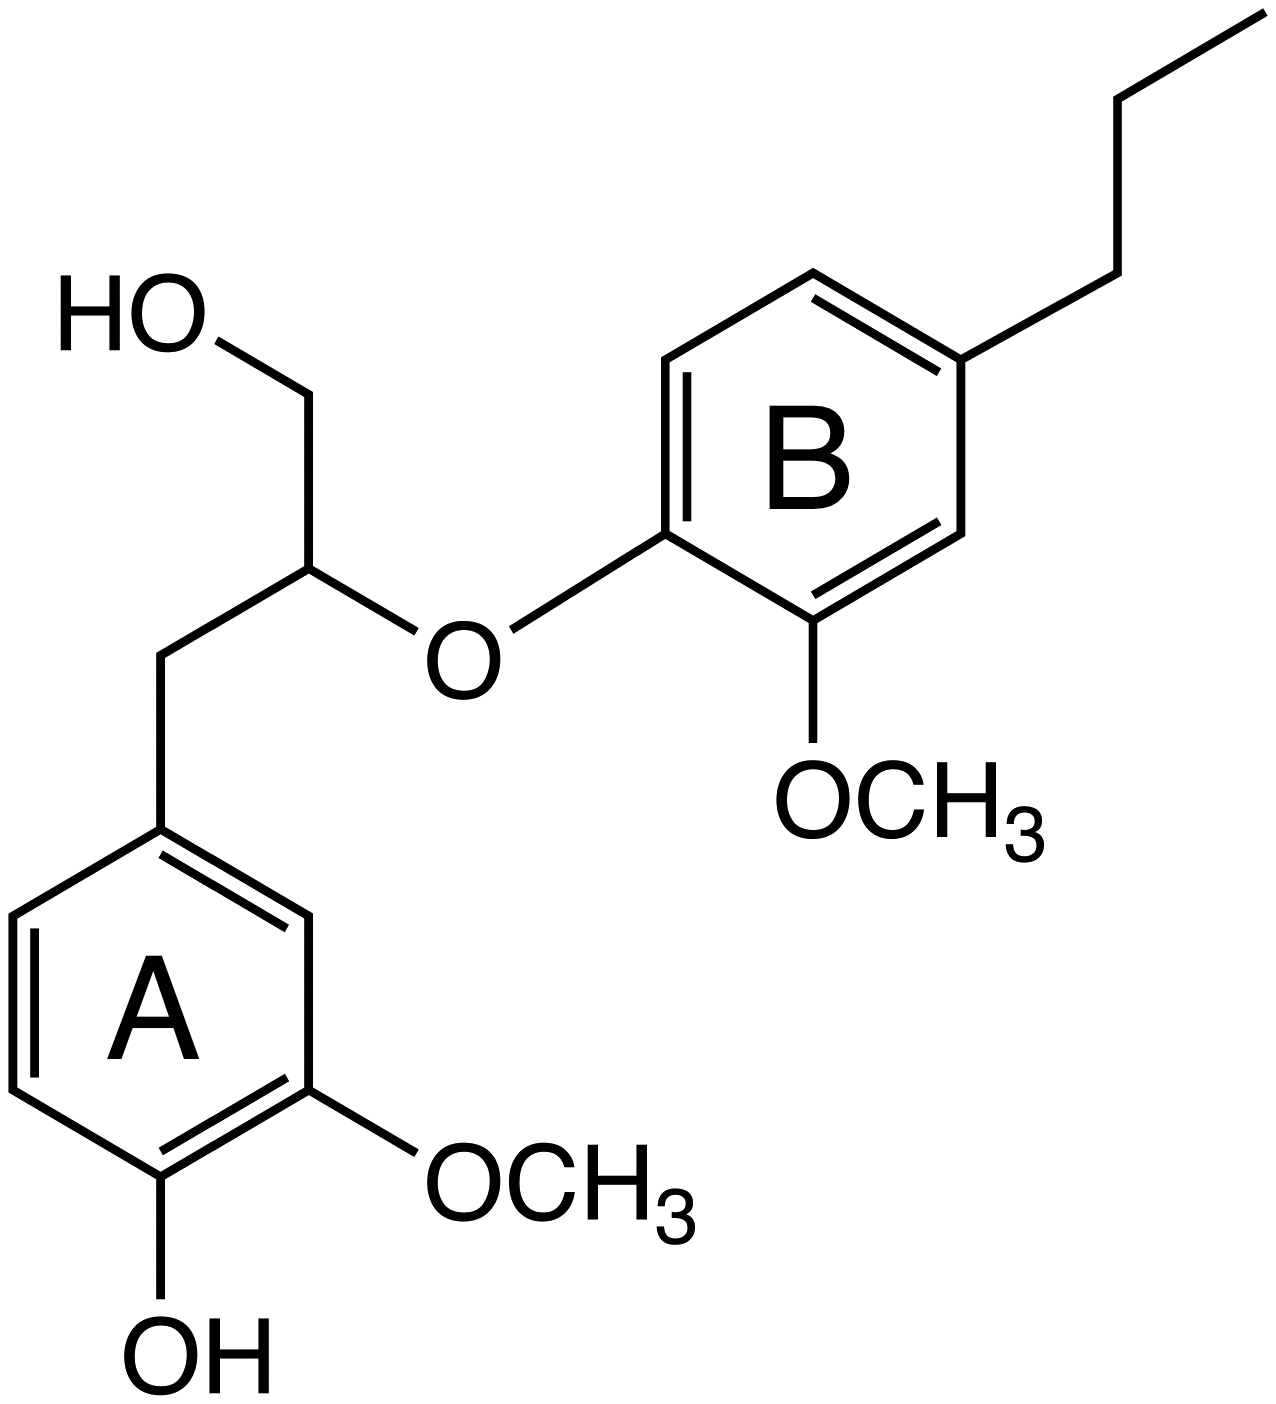 lignin_cw_compound_3025